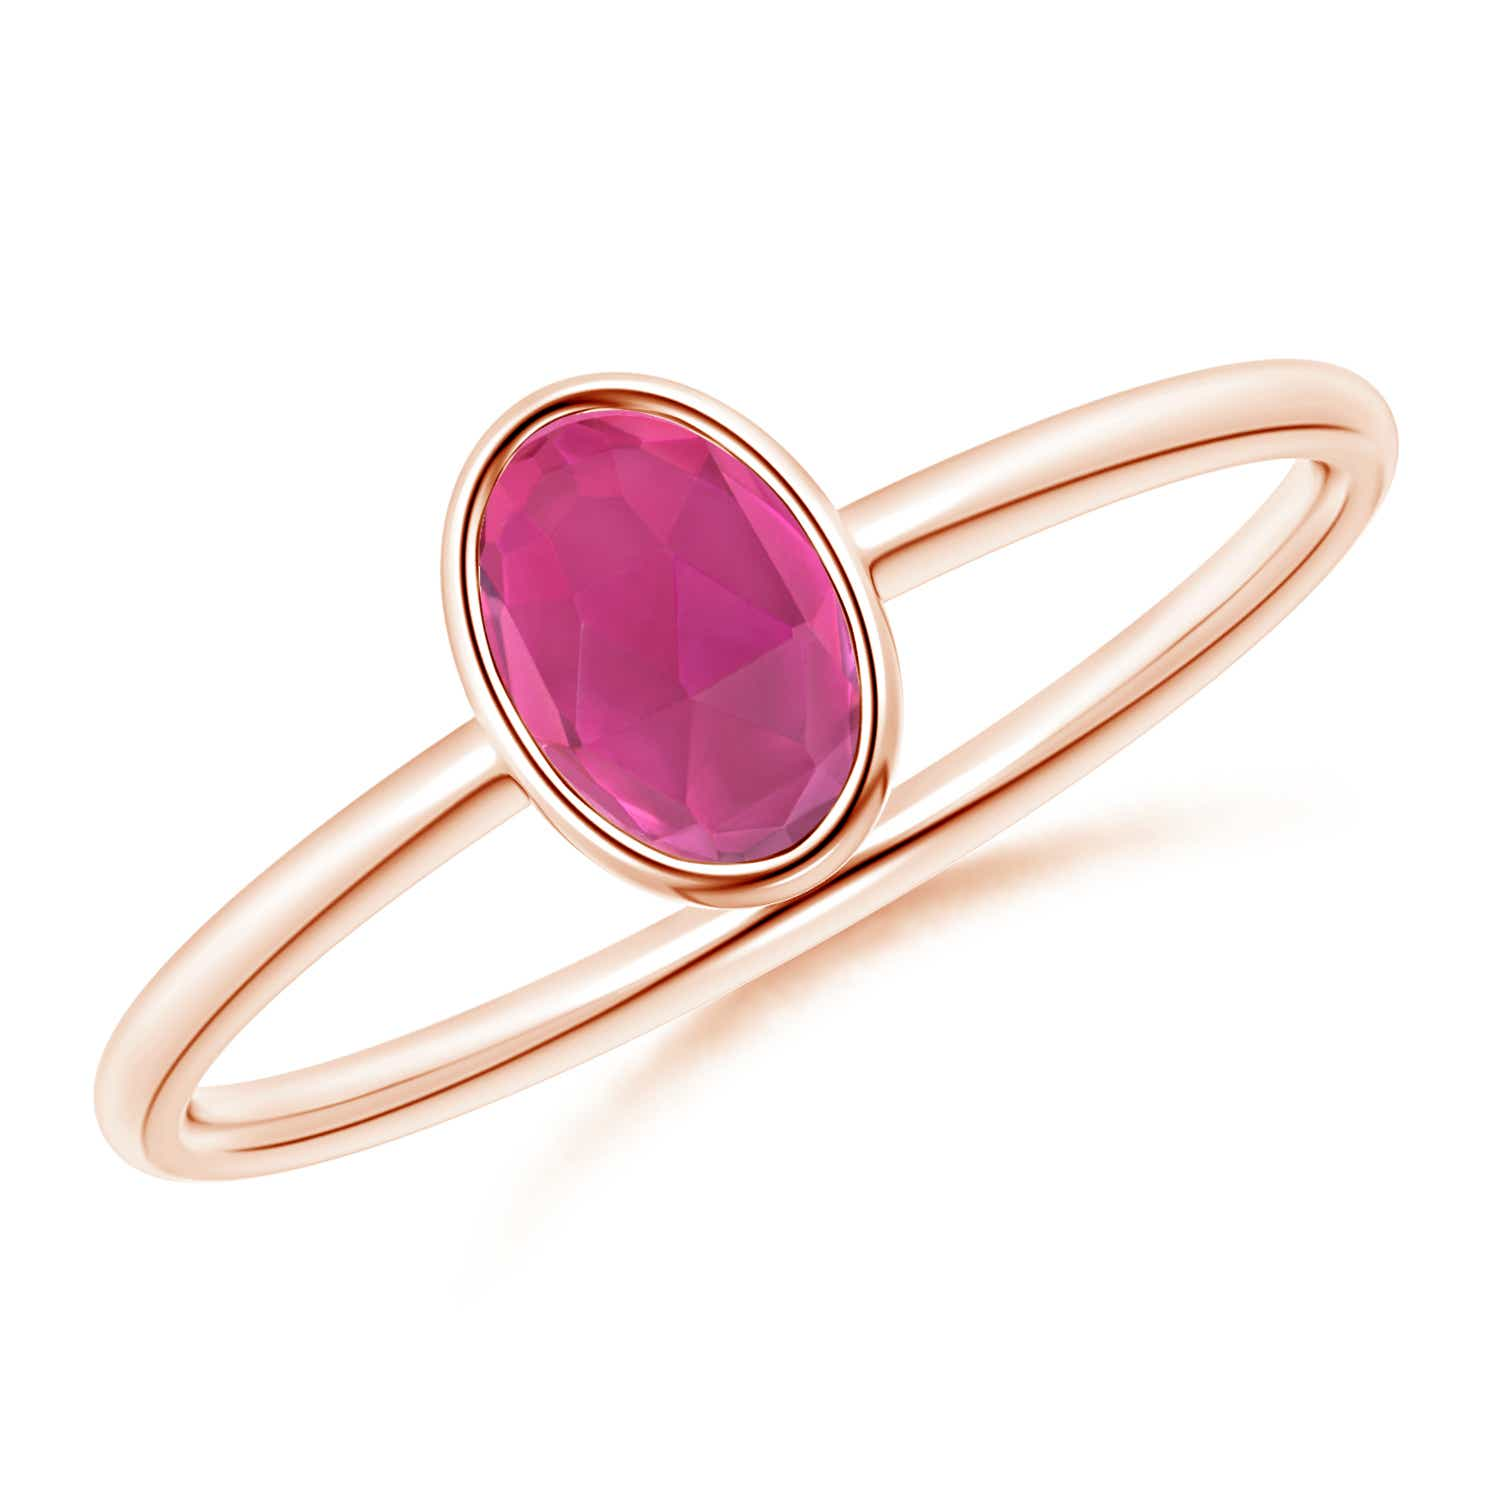 Pink Tourmaline Rings - Solitaire, Three Stone, Halo & Eternity Rings